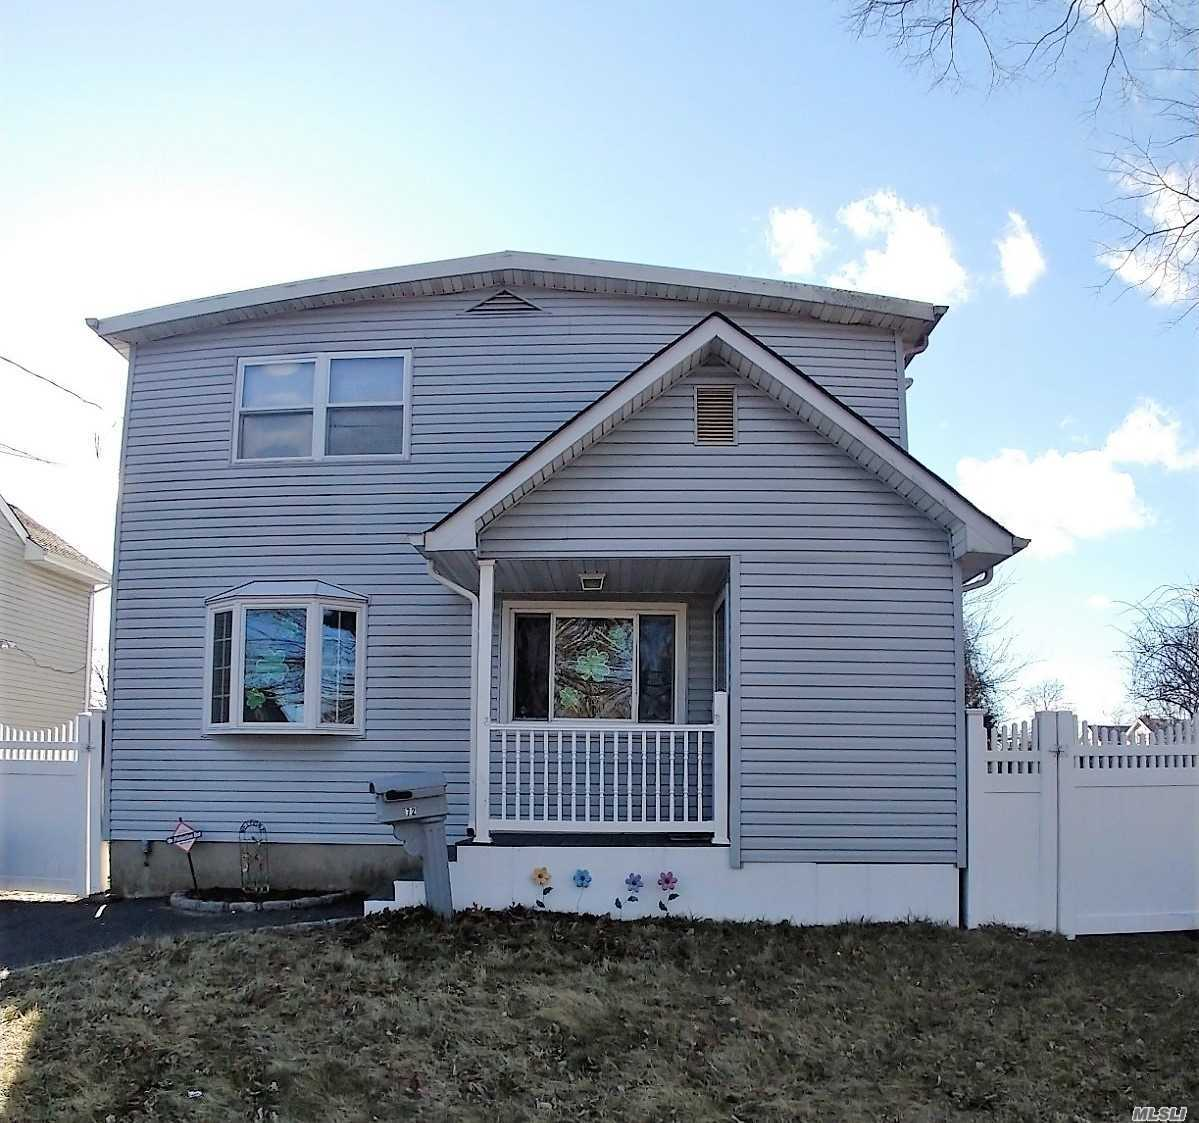 Large Expanded 4-5 Br Colonial In Islip Schools. Large Eat In Kitchen With Center Island, Living Room With Woodburning Fireplace, 2 Updated Baths, All Large Bedrooms. Partially Finished Basemet With Bar. Must See, Will Not Last!